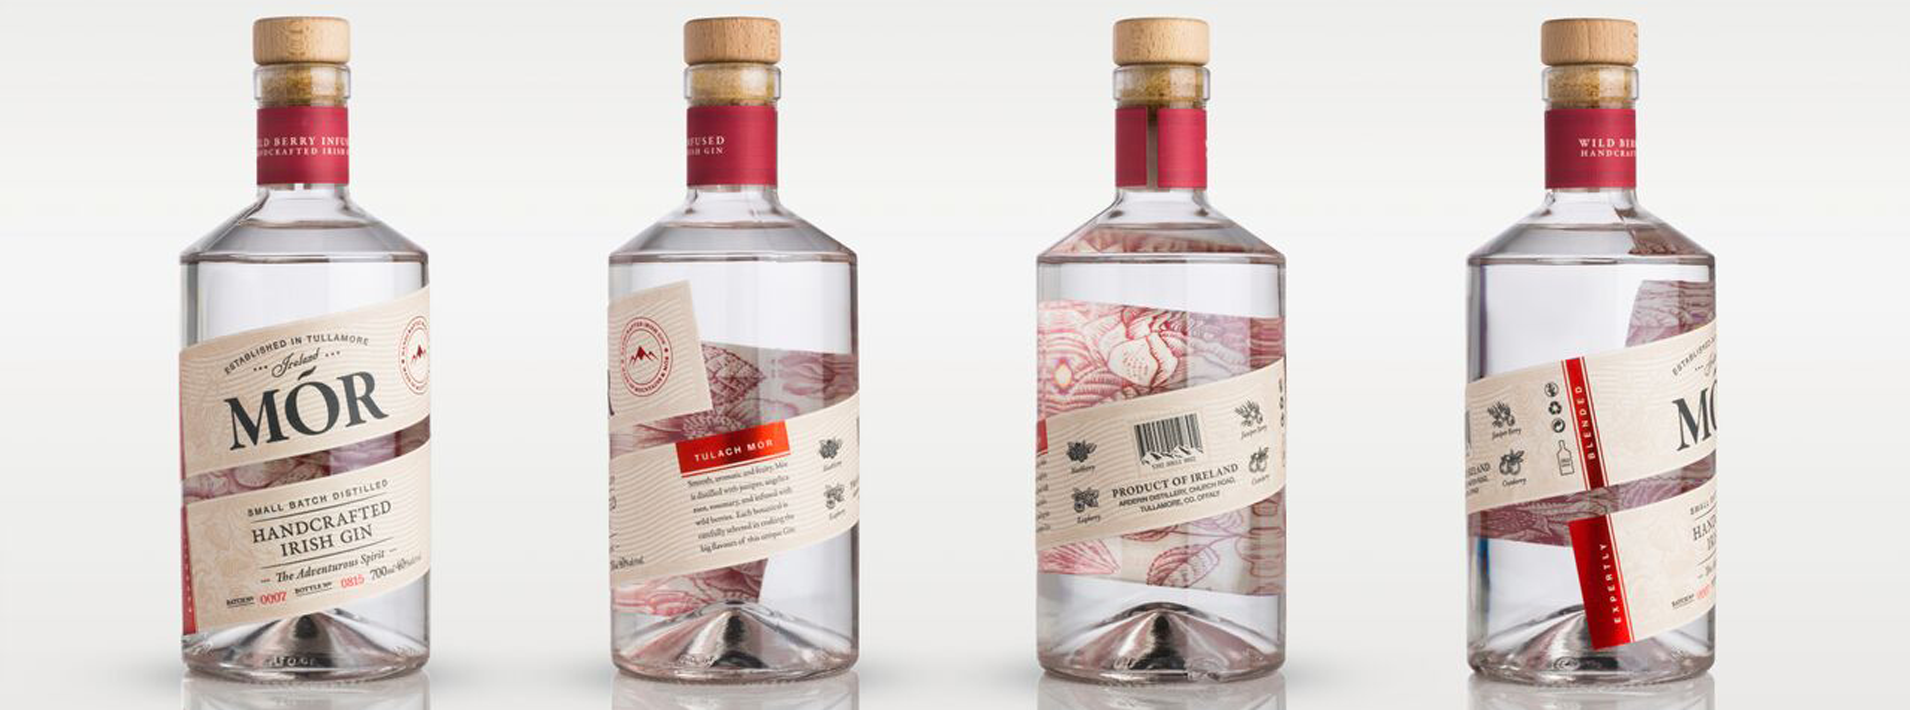 Landscape bottle images of the Mór Gin range from Arderin Distillery